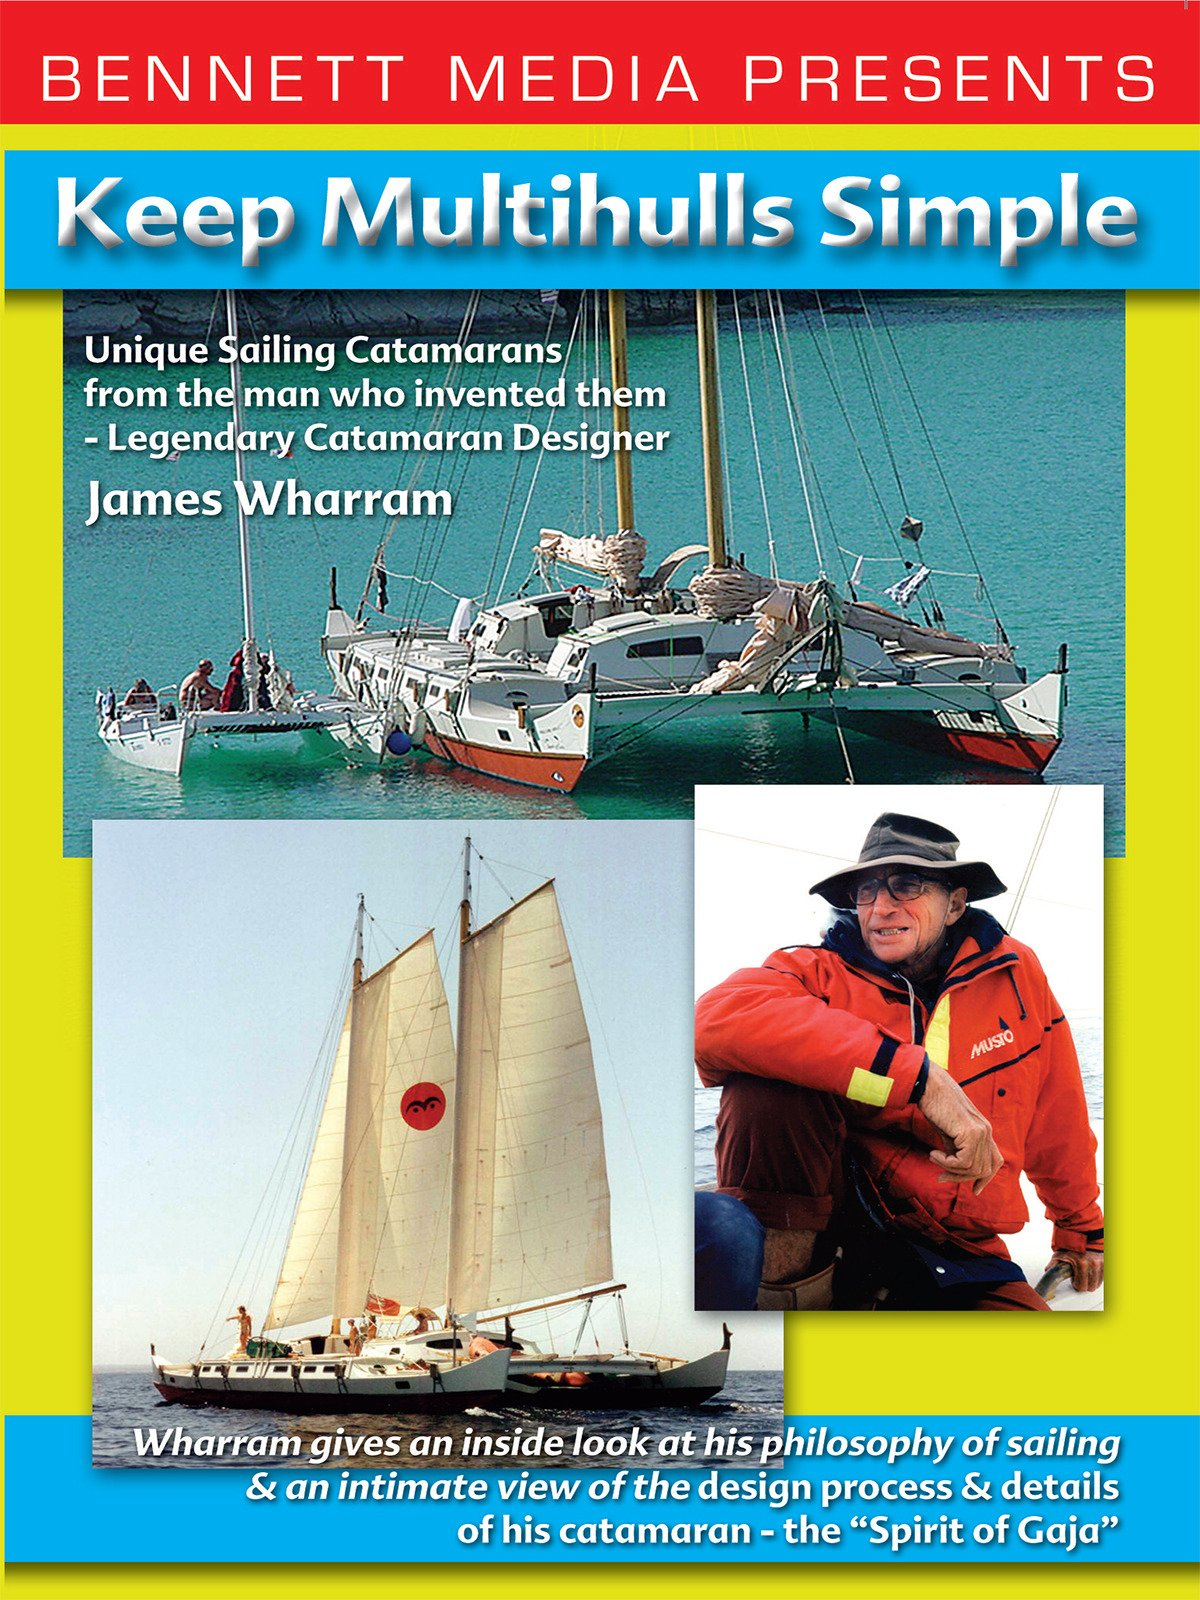 Keep Multihulls Simple